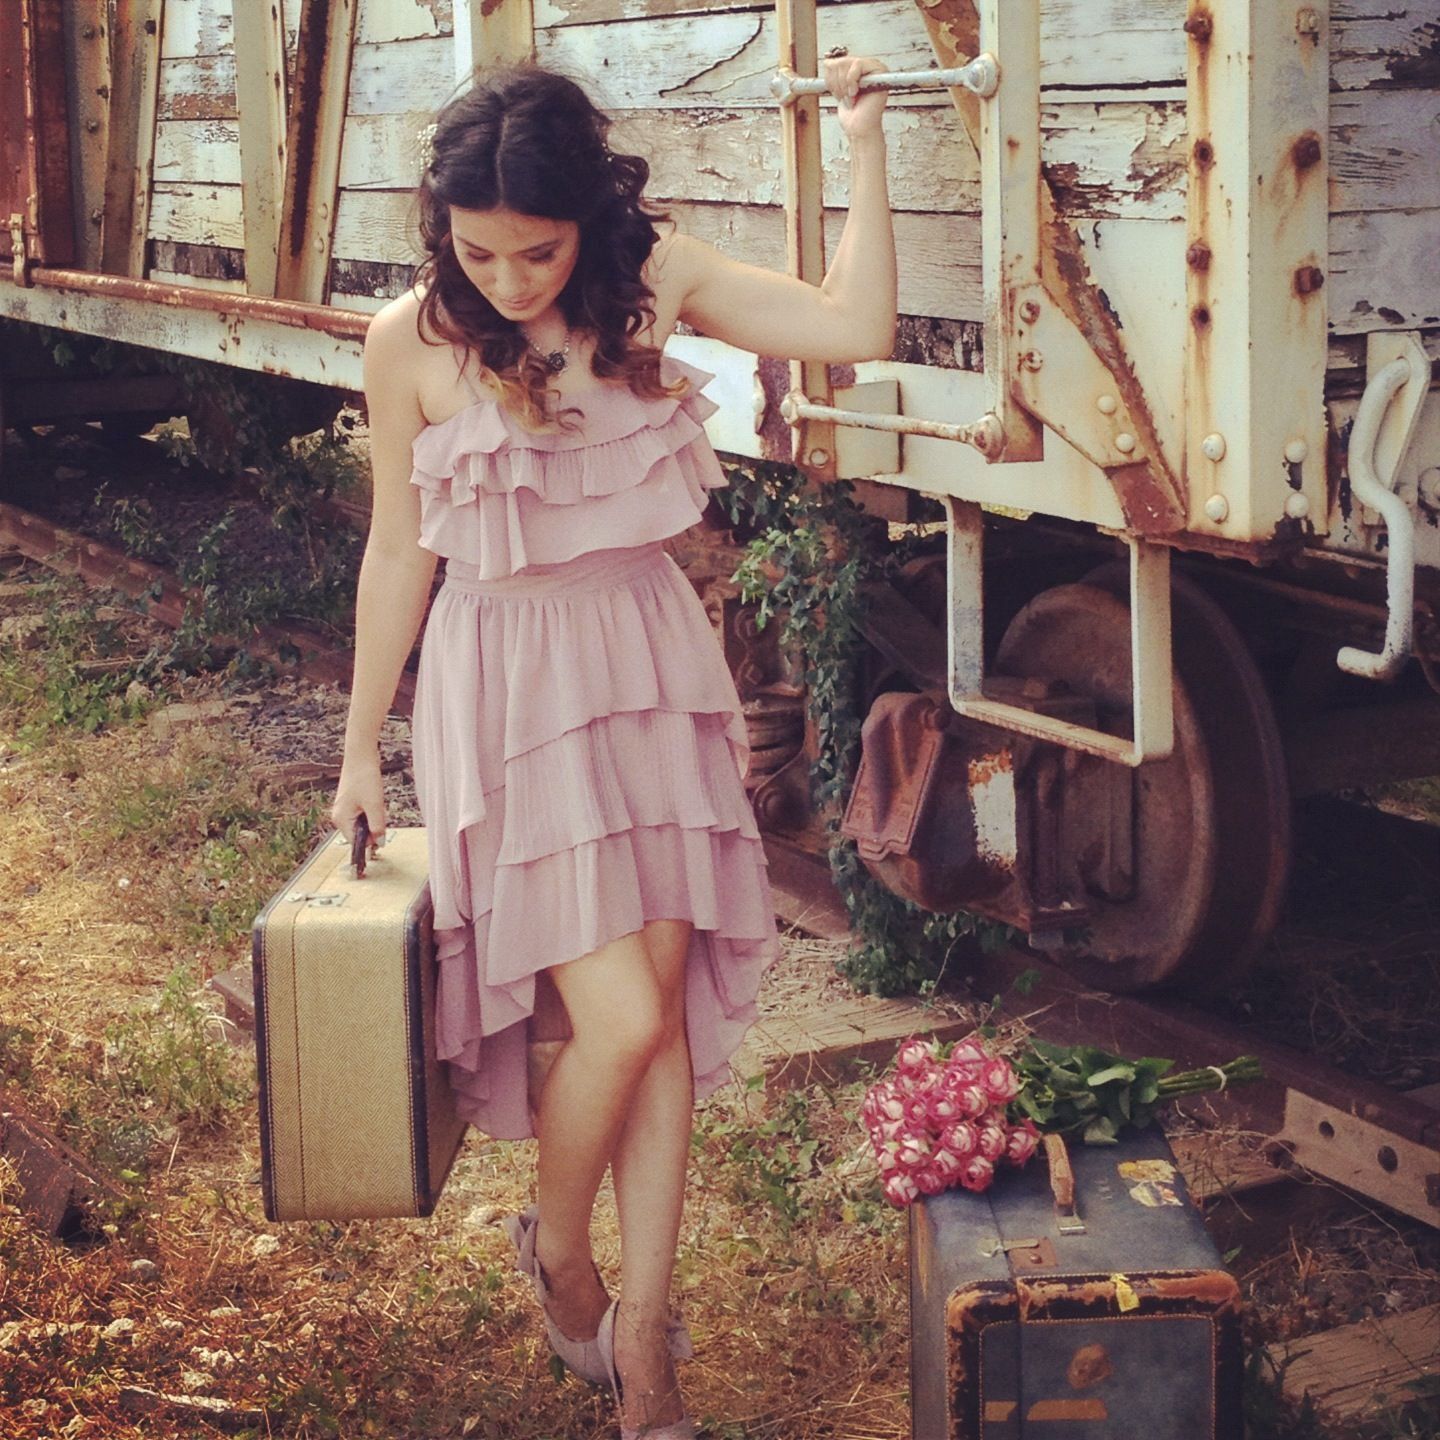 Rustic Vintage Photography